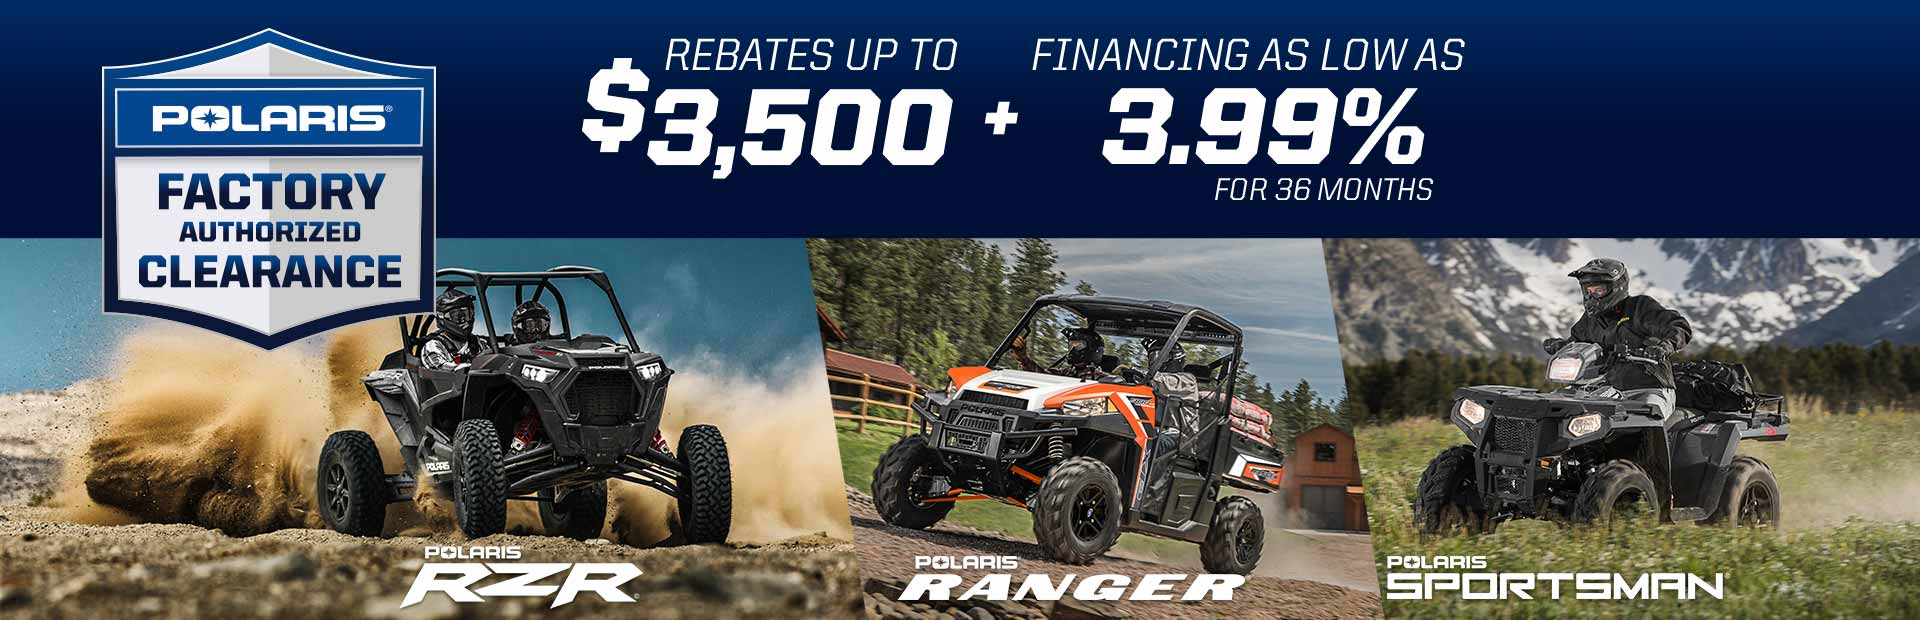 Polaris Industries: Factory Authorized Clearance